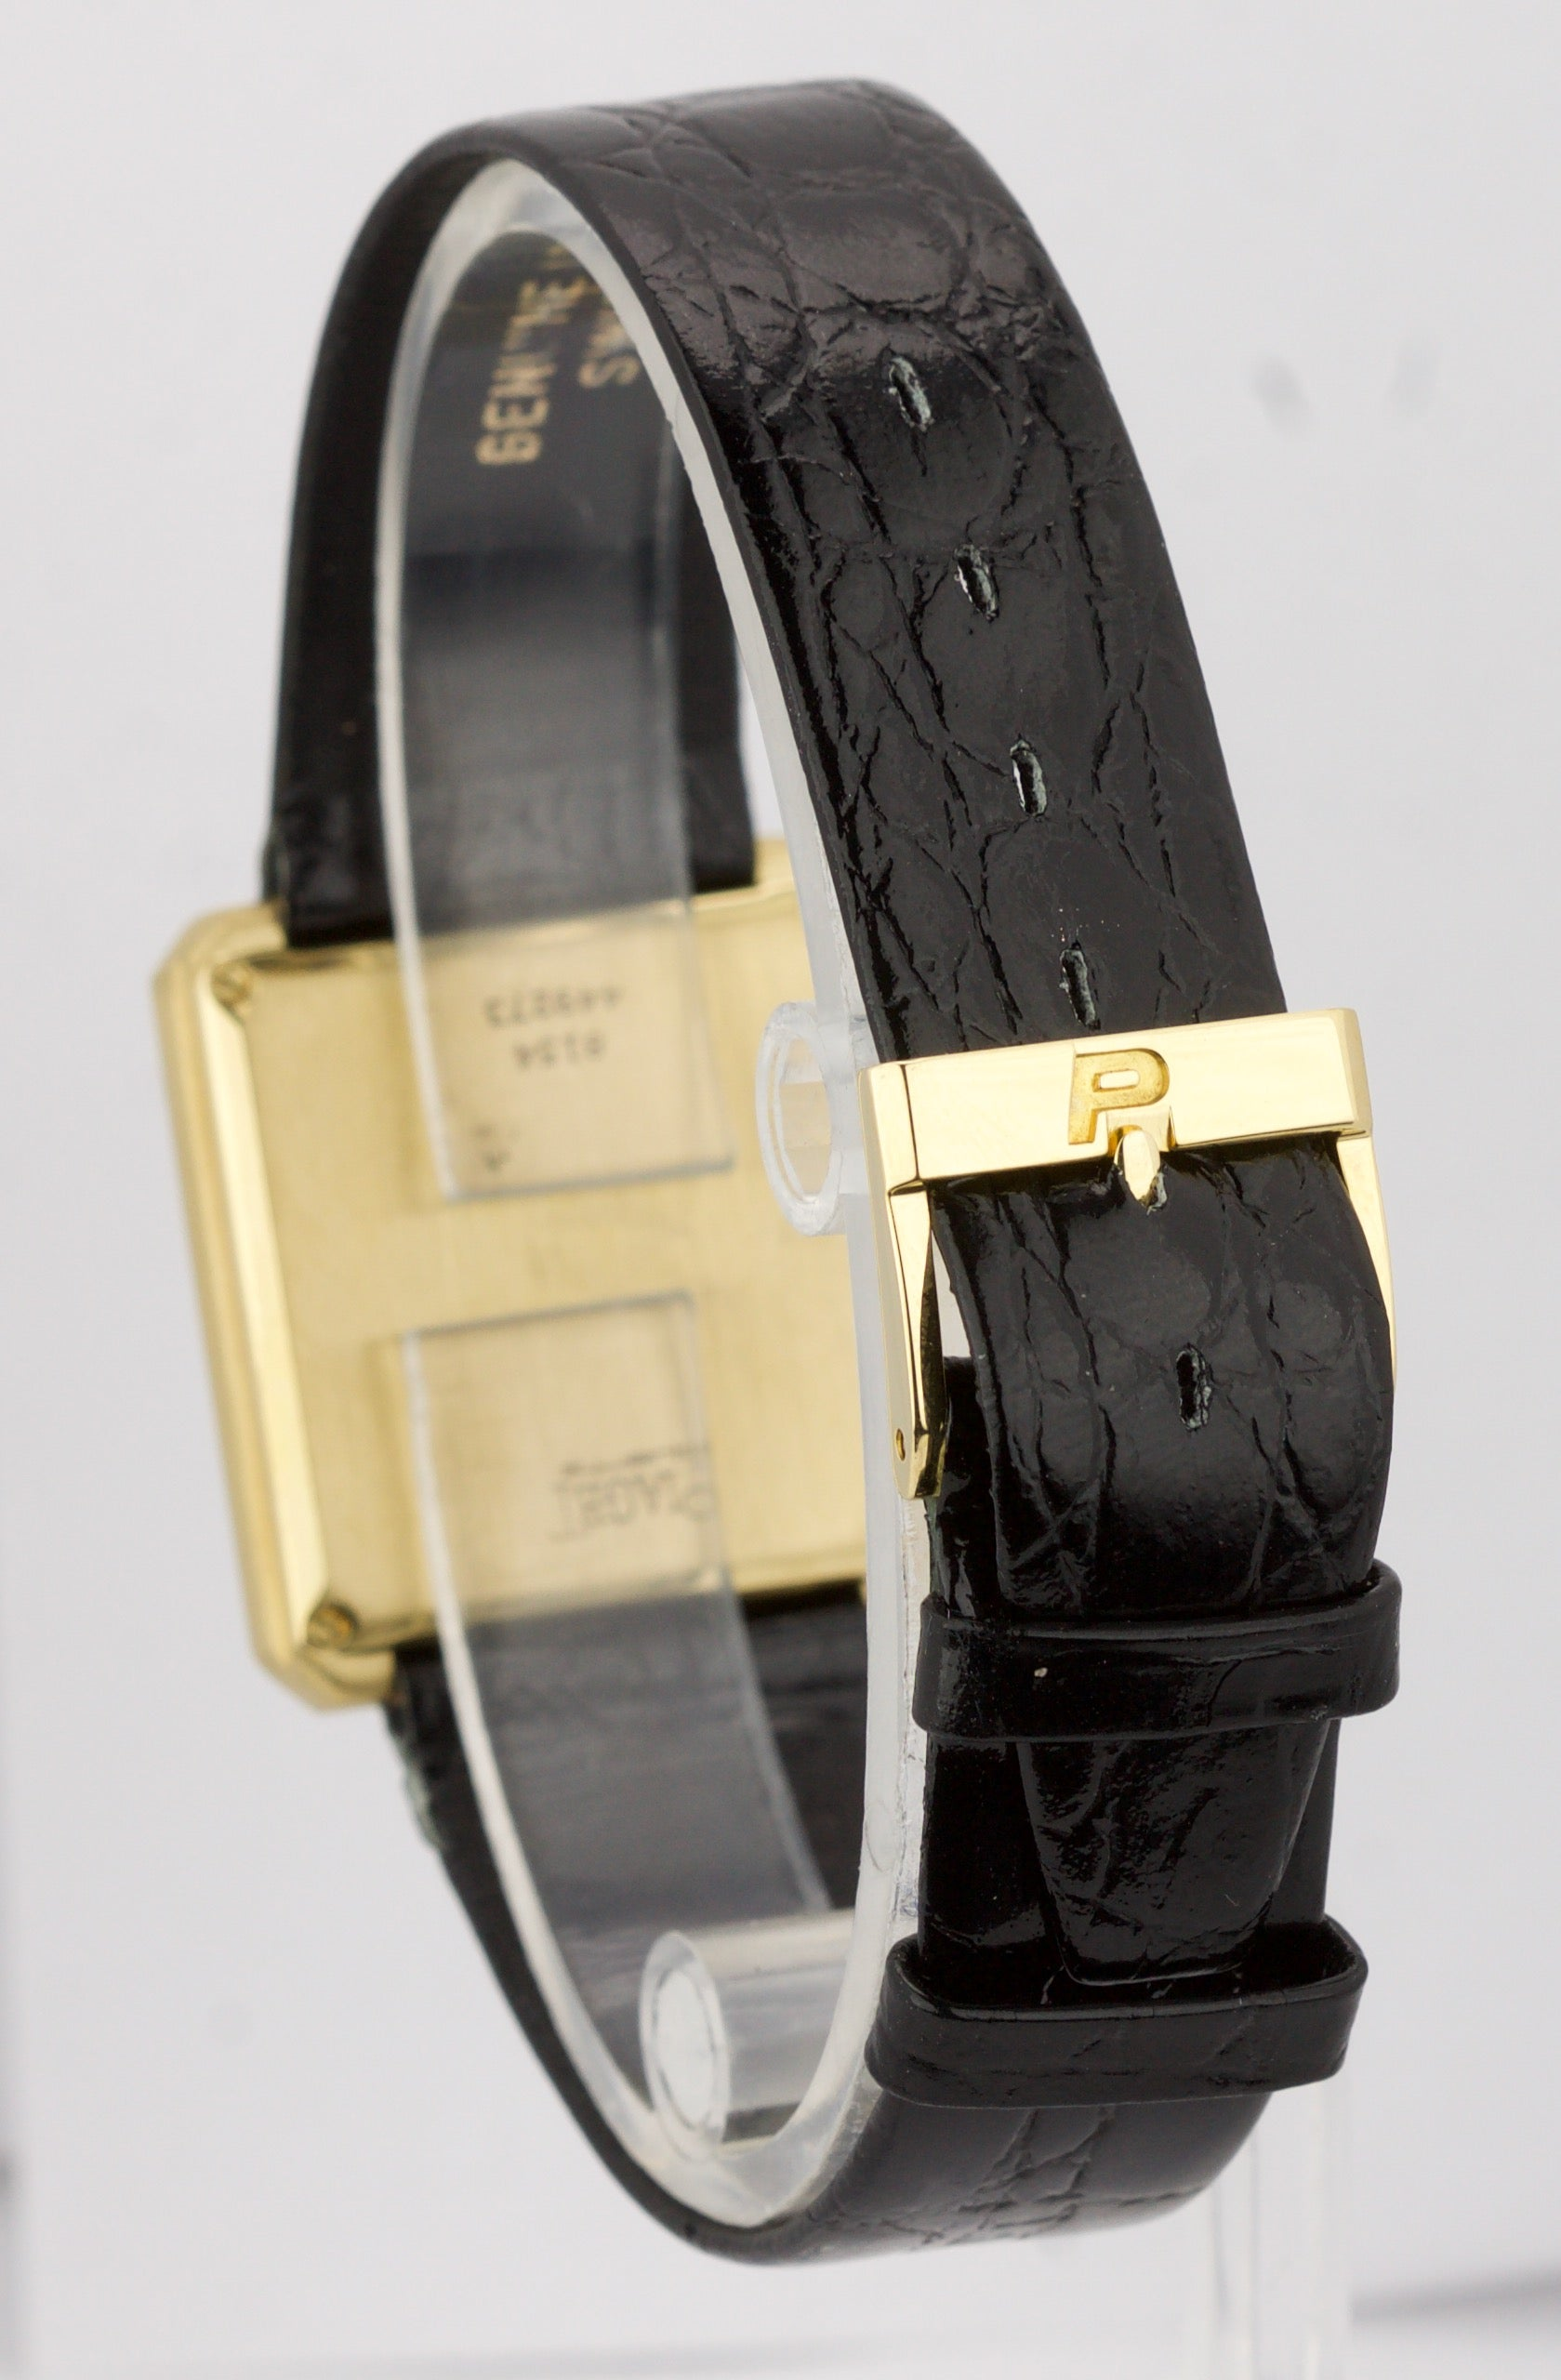 Piaget Protocole 25mm Quartz 8154 Champagne 18K Yellow Gold Leather Watch